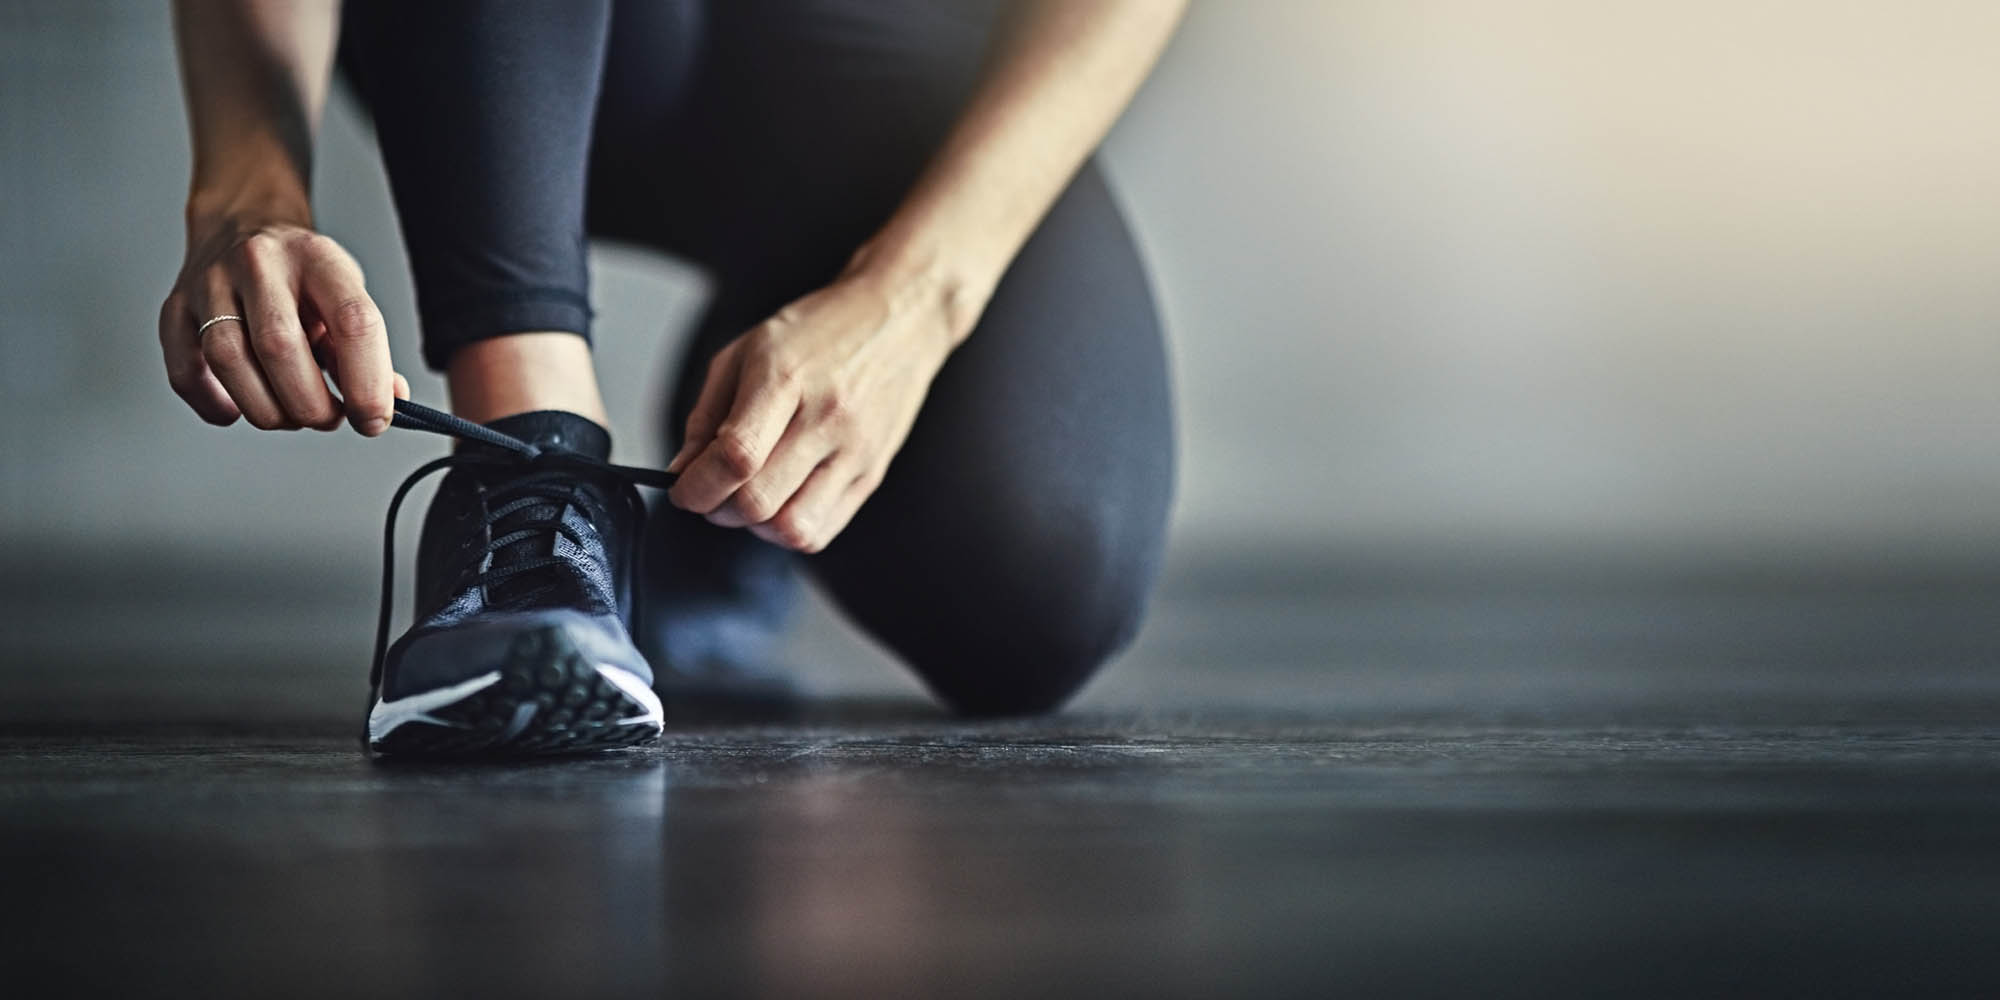 5 Reasons to Get Healthy and Fit Now